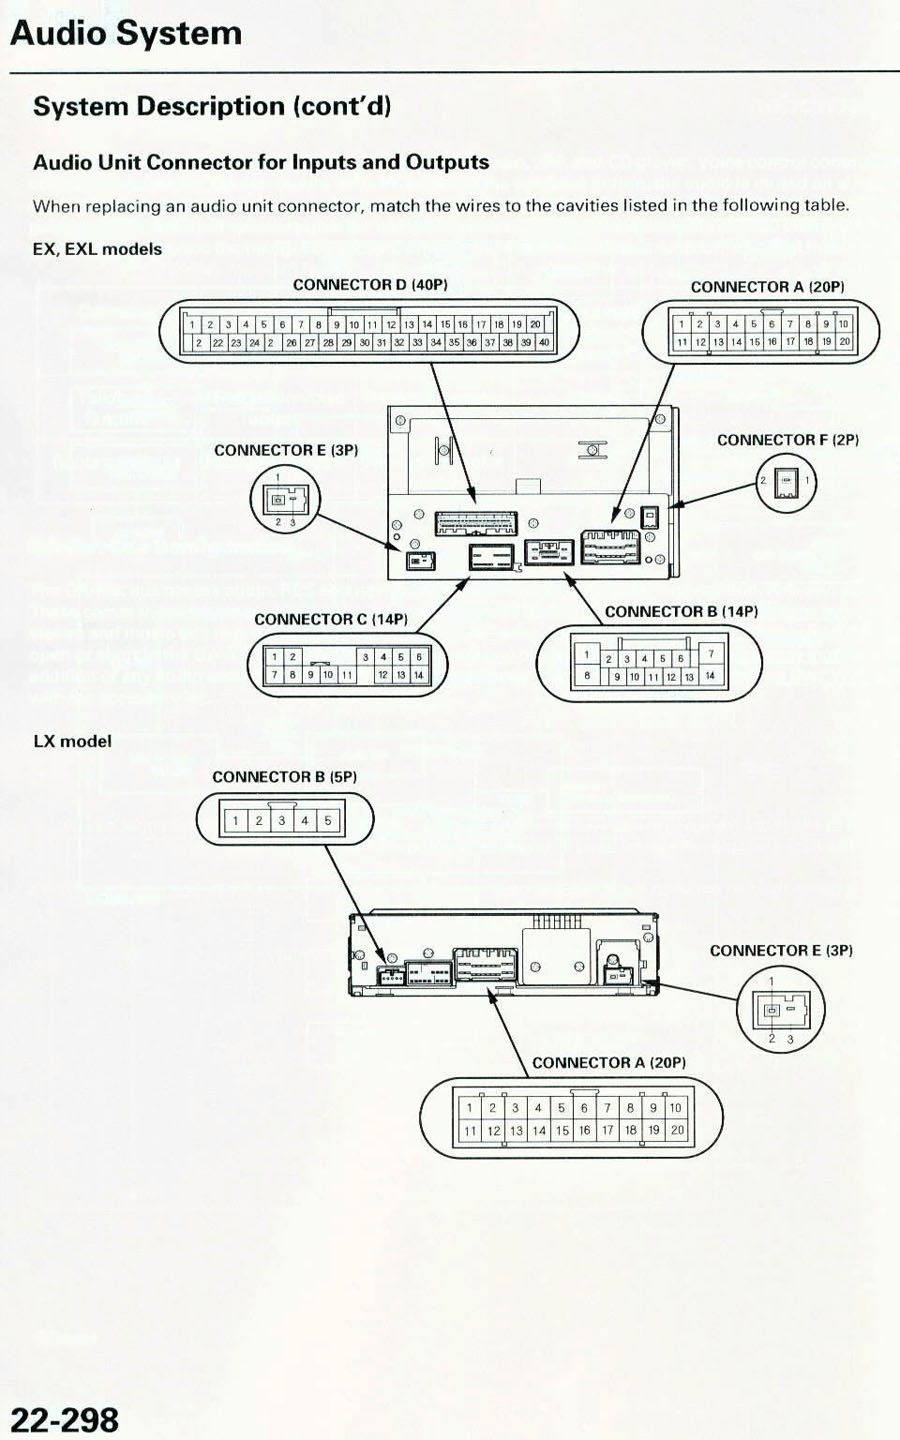 hight resolution of vision dvd player wiring diagram trusted wiring diagram honda goldwing wiring diagram 2006 exl res